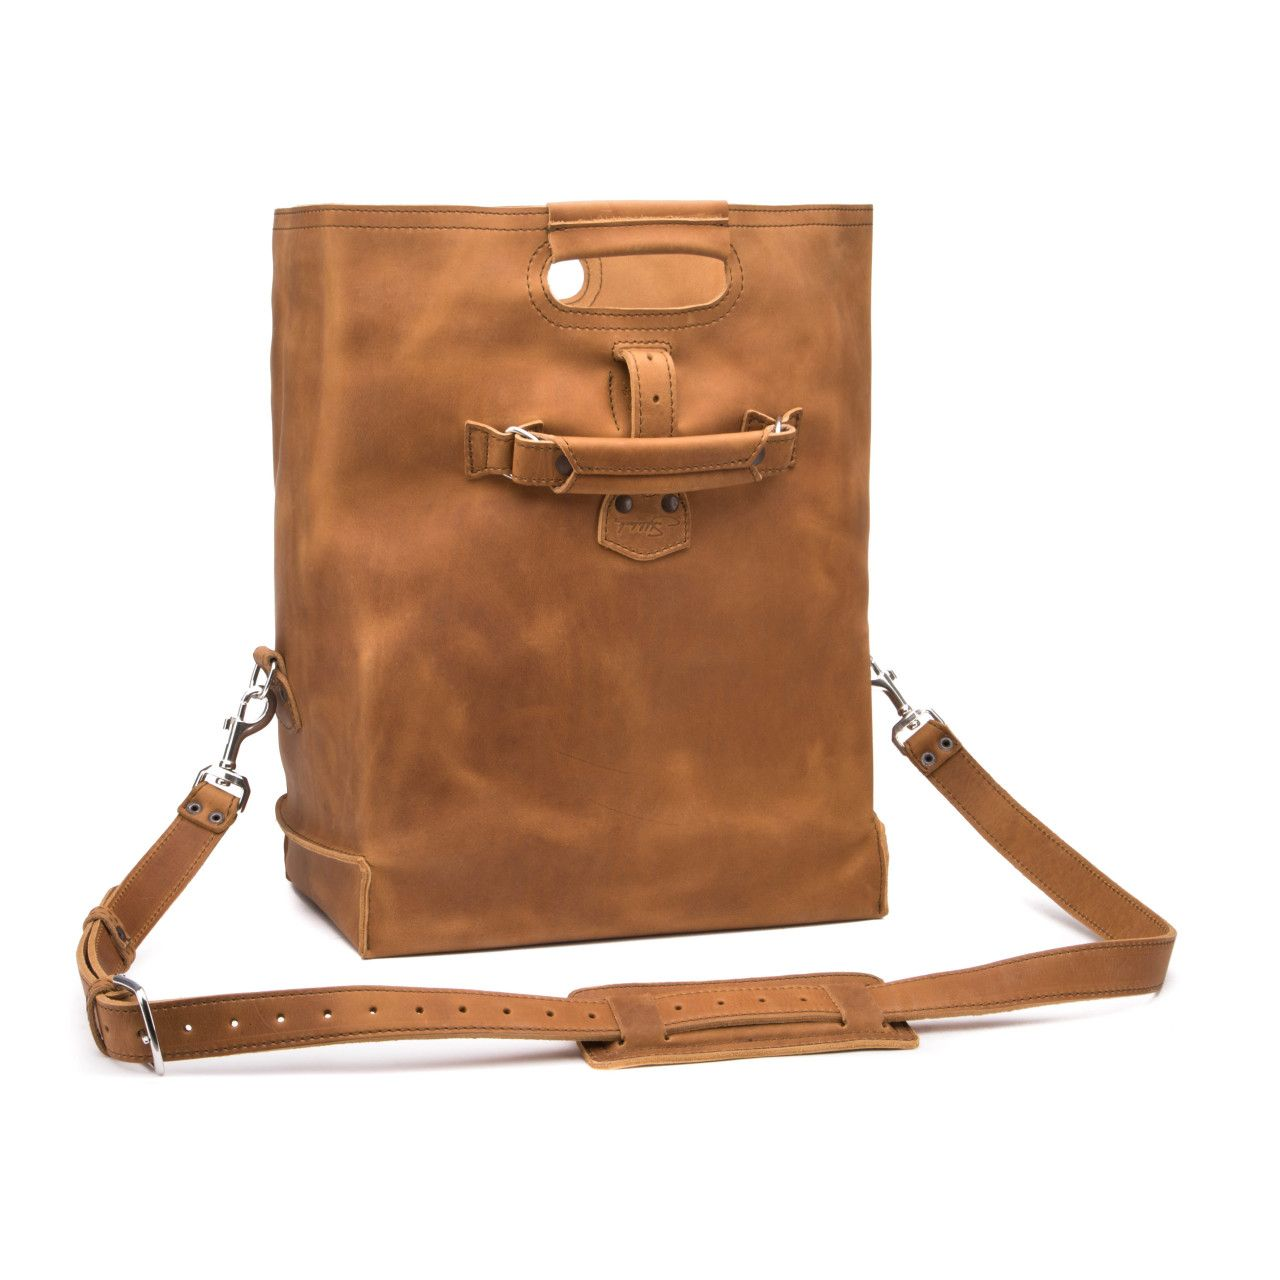 leather overnight bag large in tobacco leather